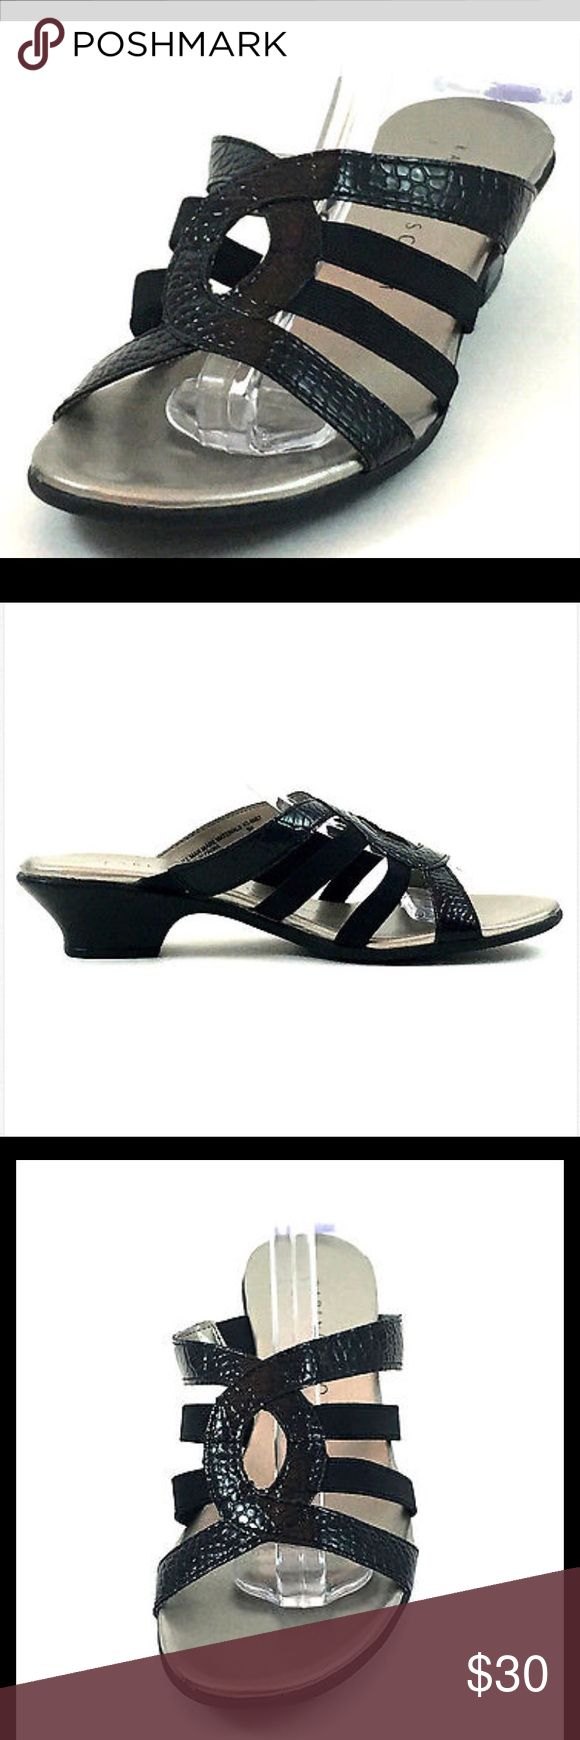 Karen Scott Women's Black Leather Slides New with defects. Top and bottom straps and center detail are the snake skin print embossed areas.  The two middle straps on either side are black elastic. Man made silver foot bed does provide some cushioning. Black rubber sole. Sandals were department store display shoes. They are in very good overall condition. There is minimal wear to the soles from being tried on in the store. The leather uppers are intact and don't have any damage. (Item# KS-01)…